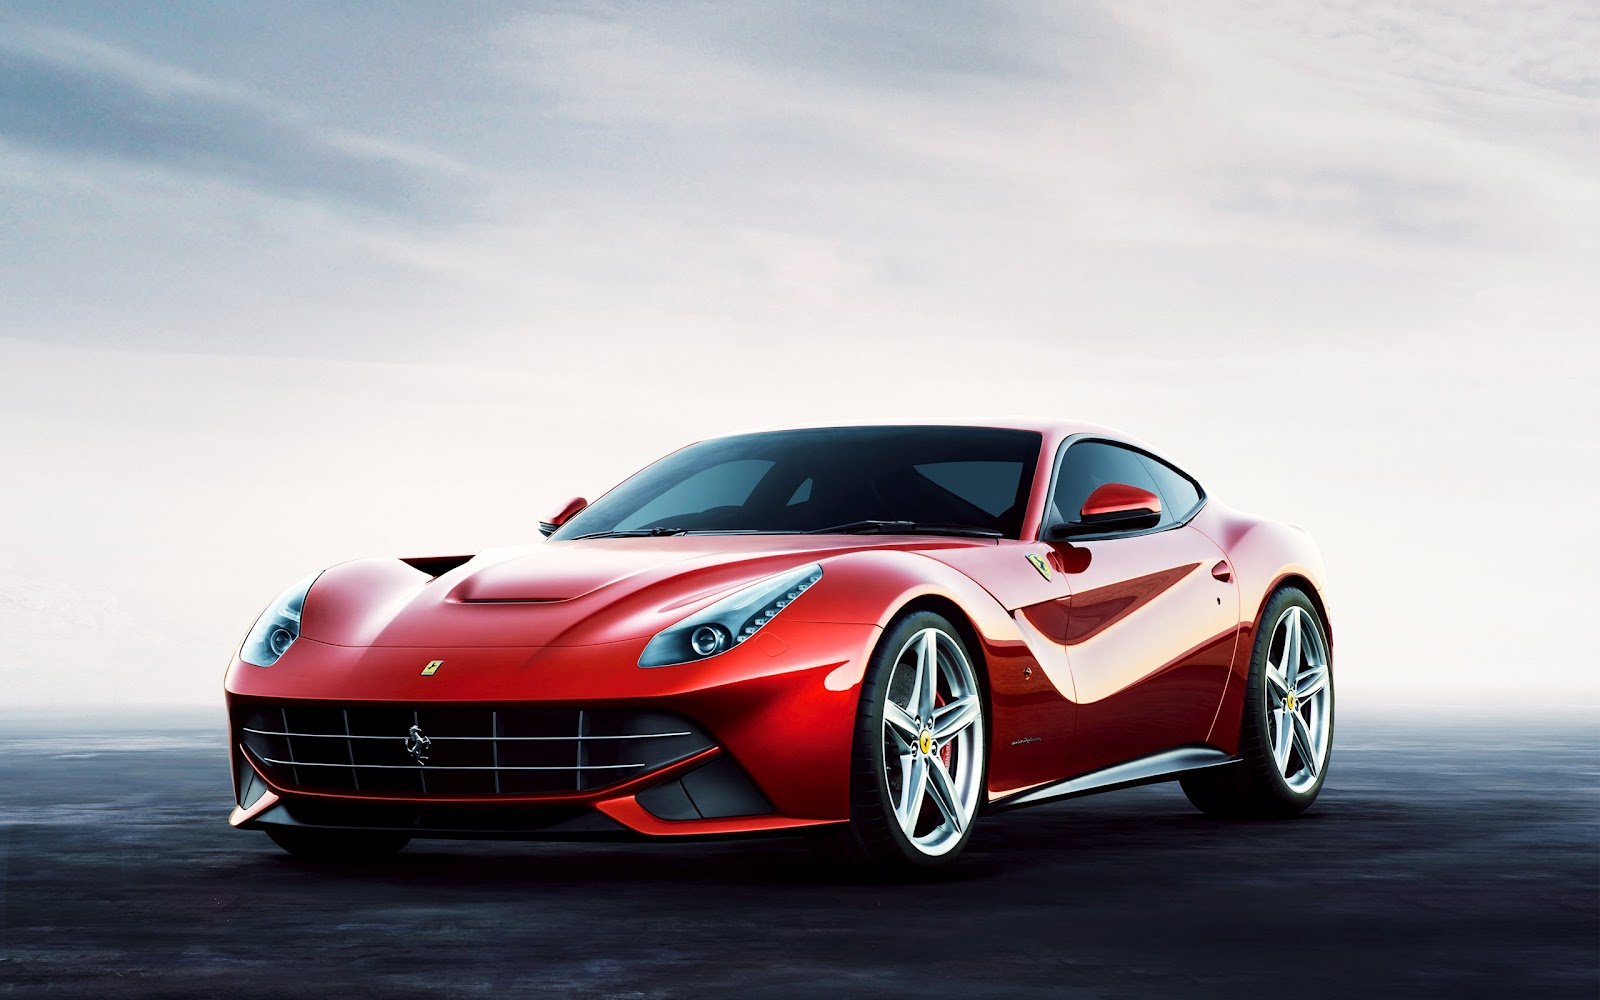 Ferrari Berlinetta Wallpaper Sport Cars 2015 866 Wallpaper Cool 1600x1000